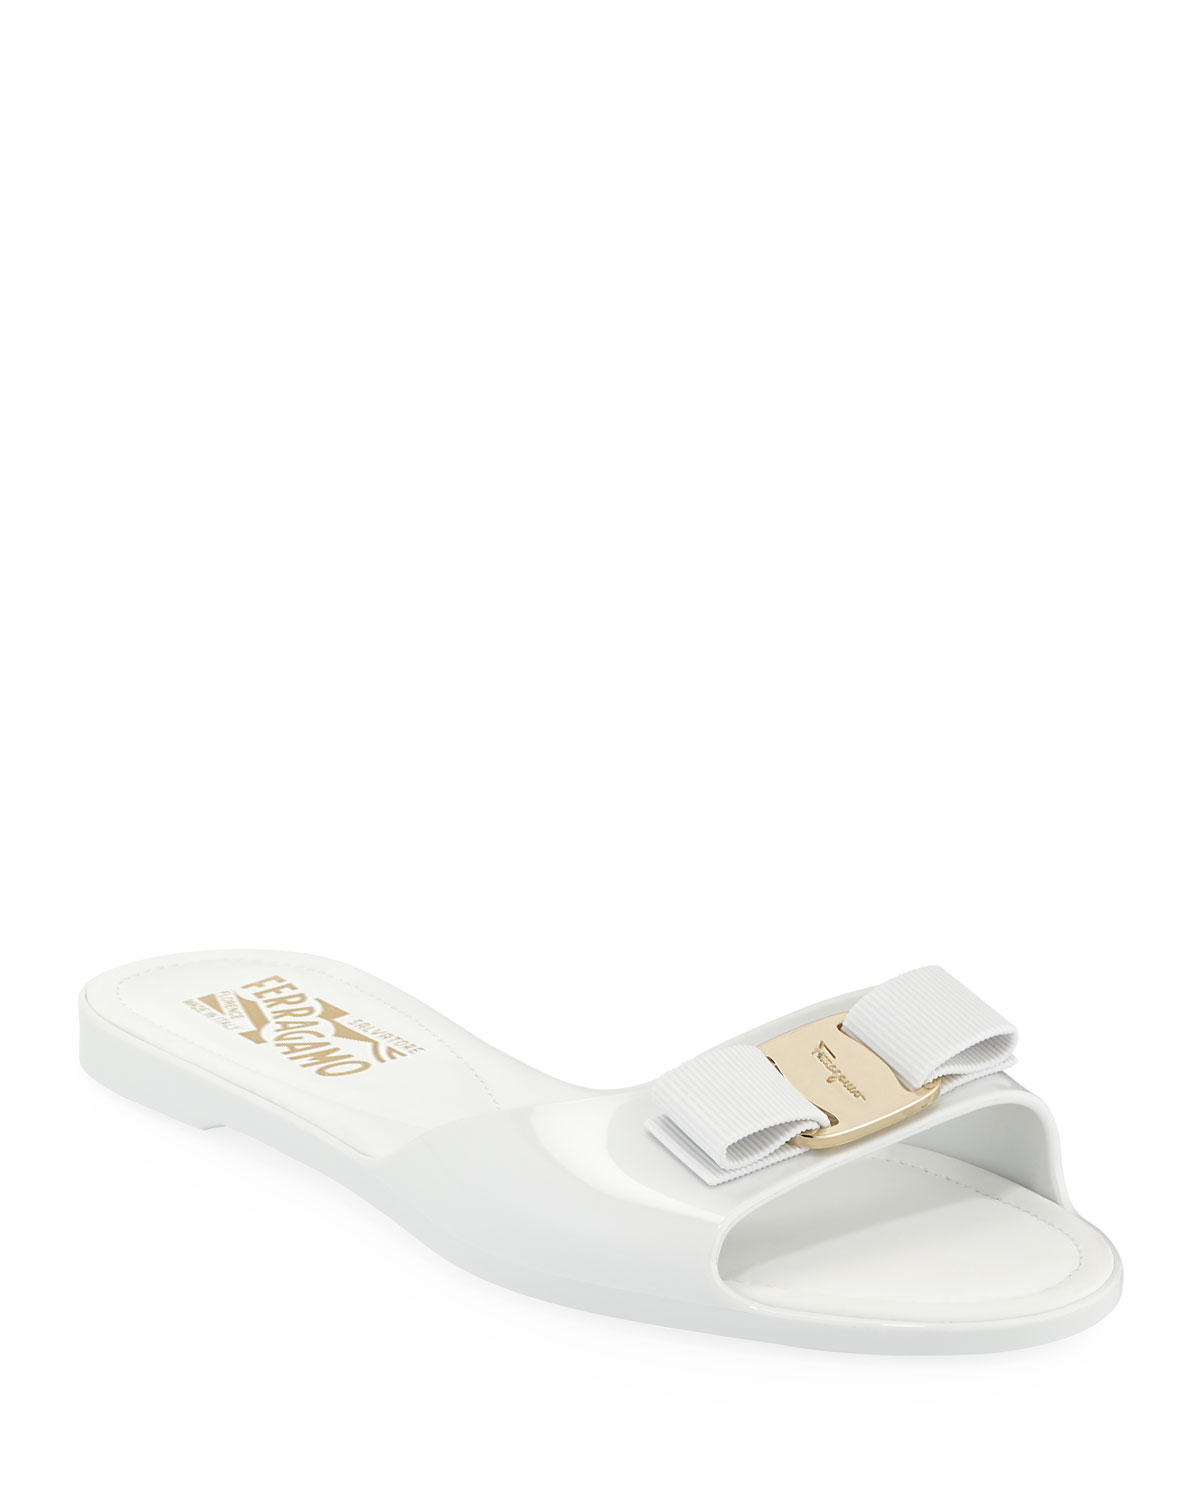 e54fda8c9 Salvatore Ferragamo Cirella Flat PVC Jelly Bow Slide Sandals